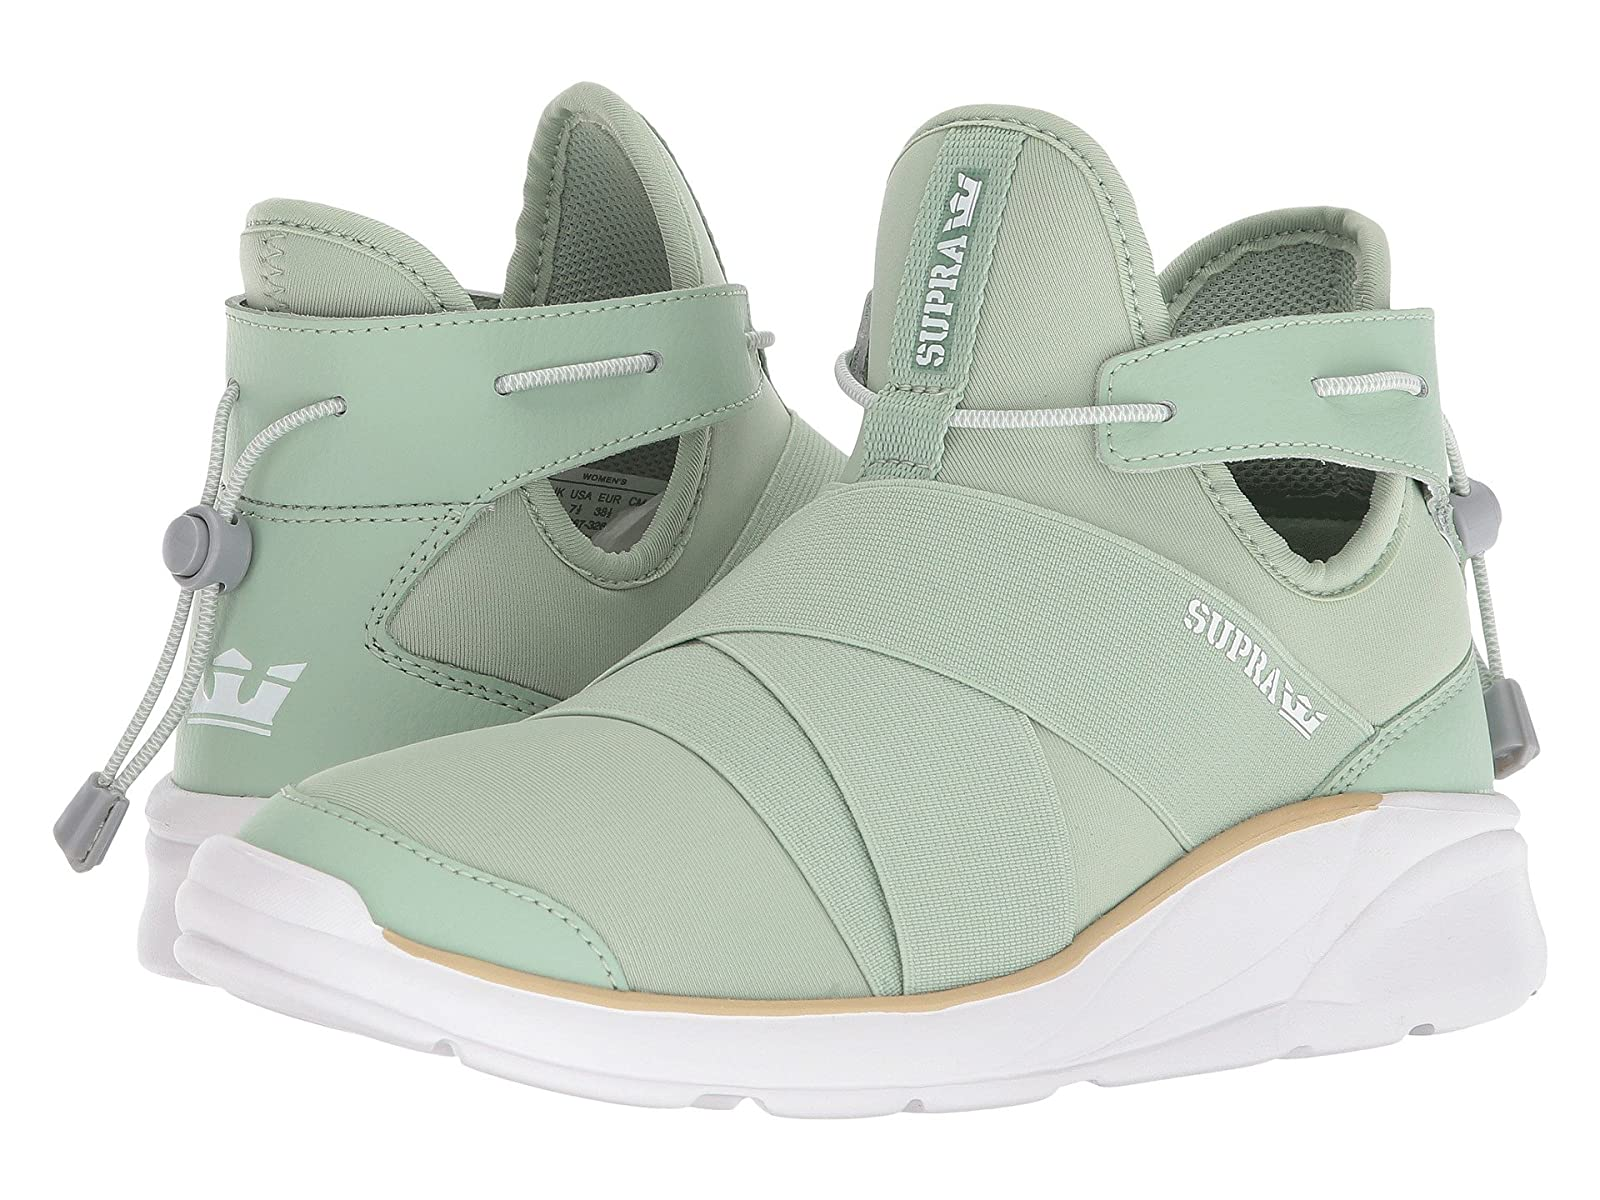 Supra AnevayCheap and distinctive eye-catching shoes